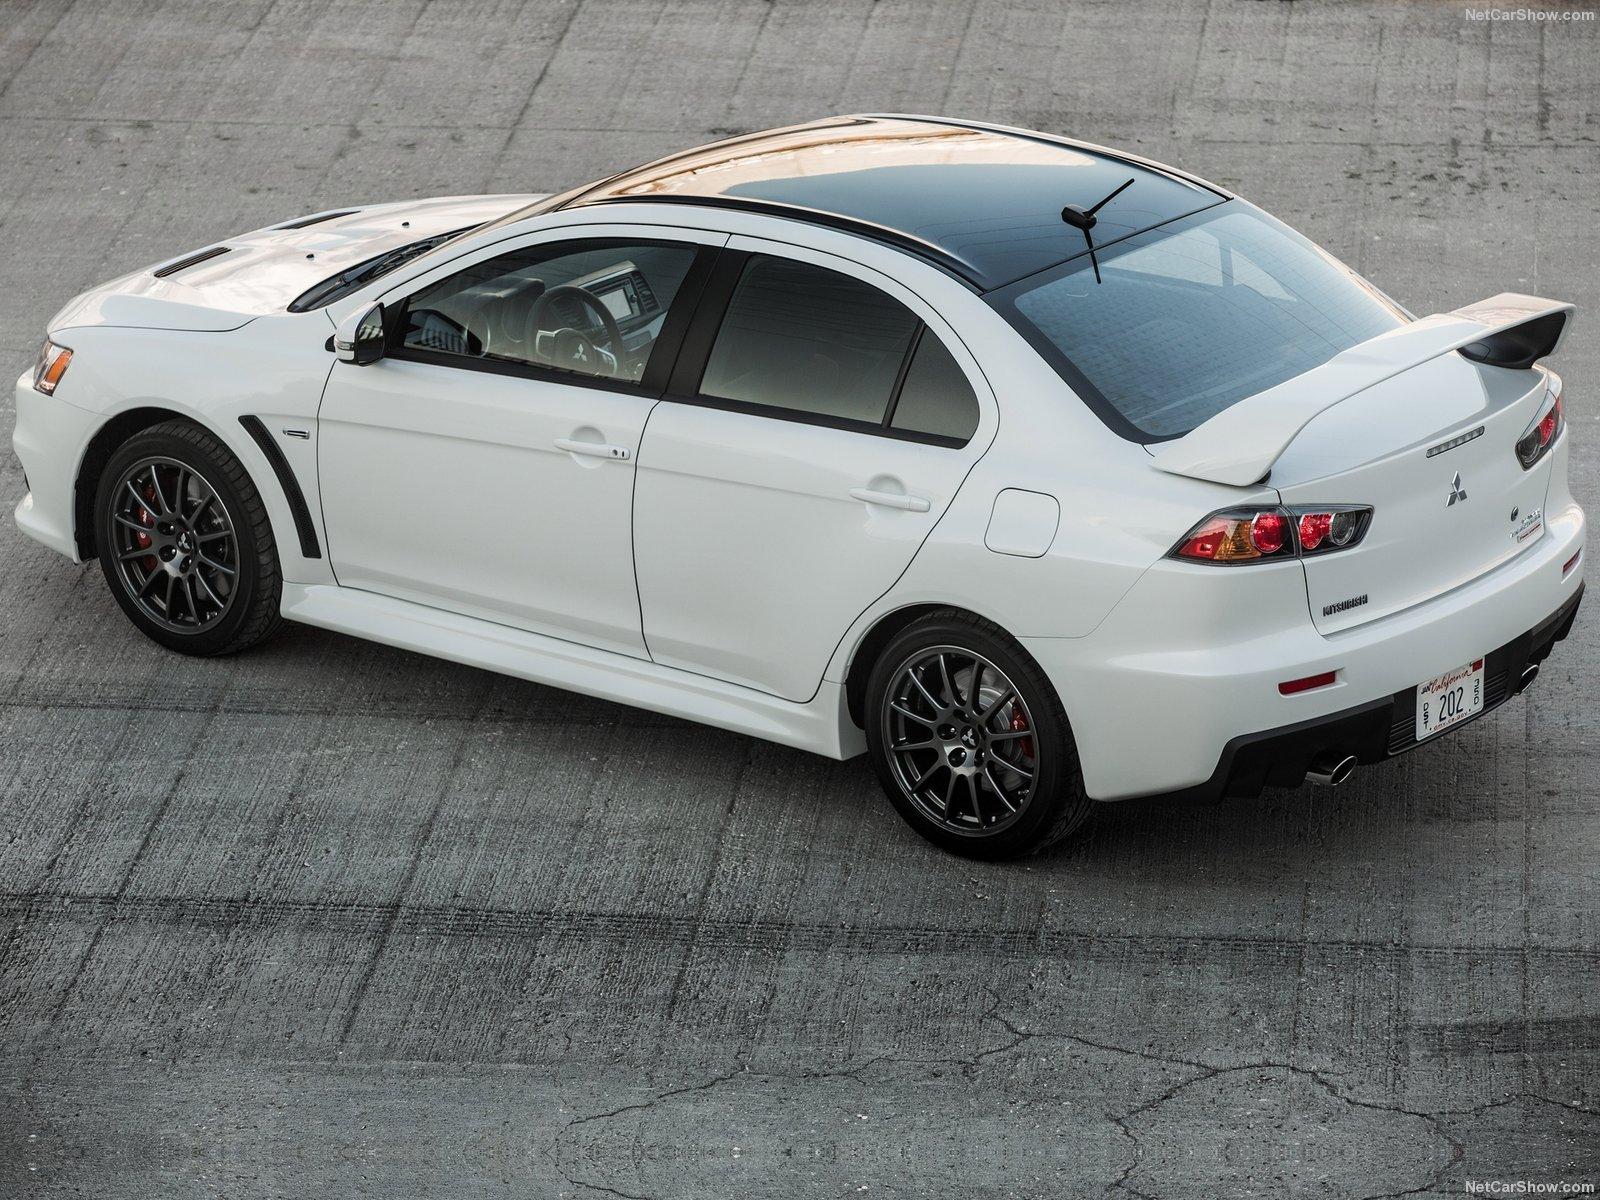 Mitsubishi Lancer Evolution photo 151445